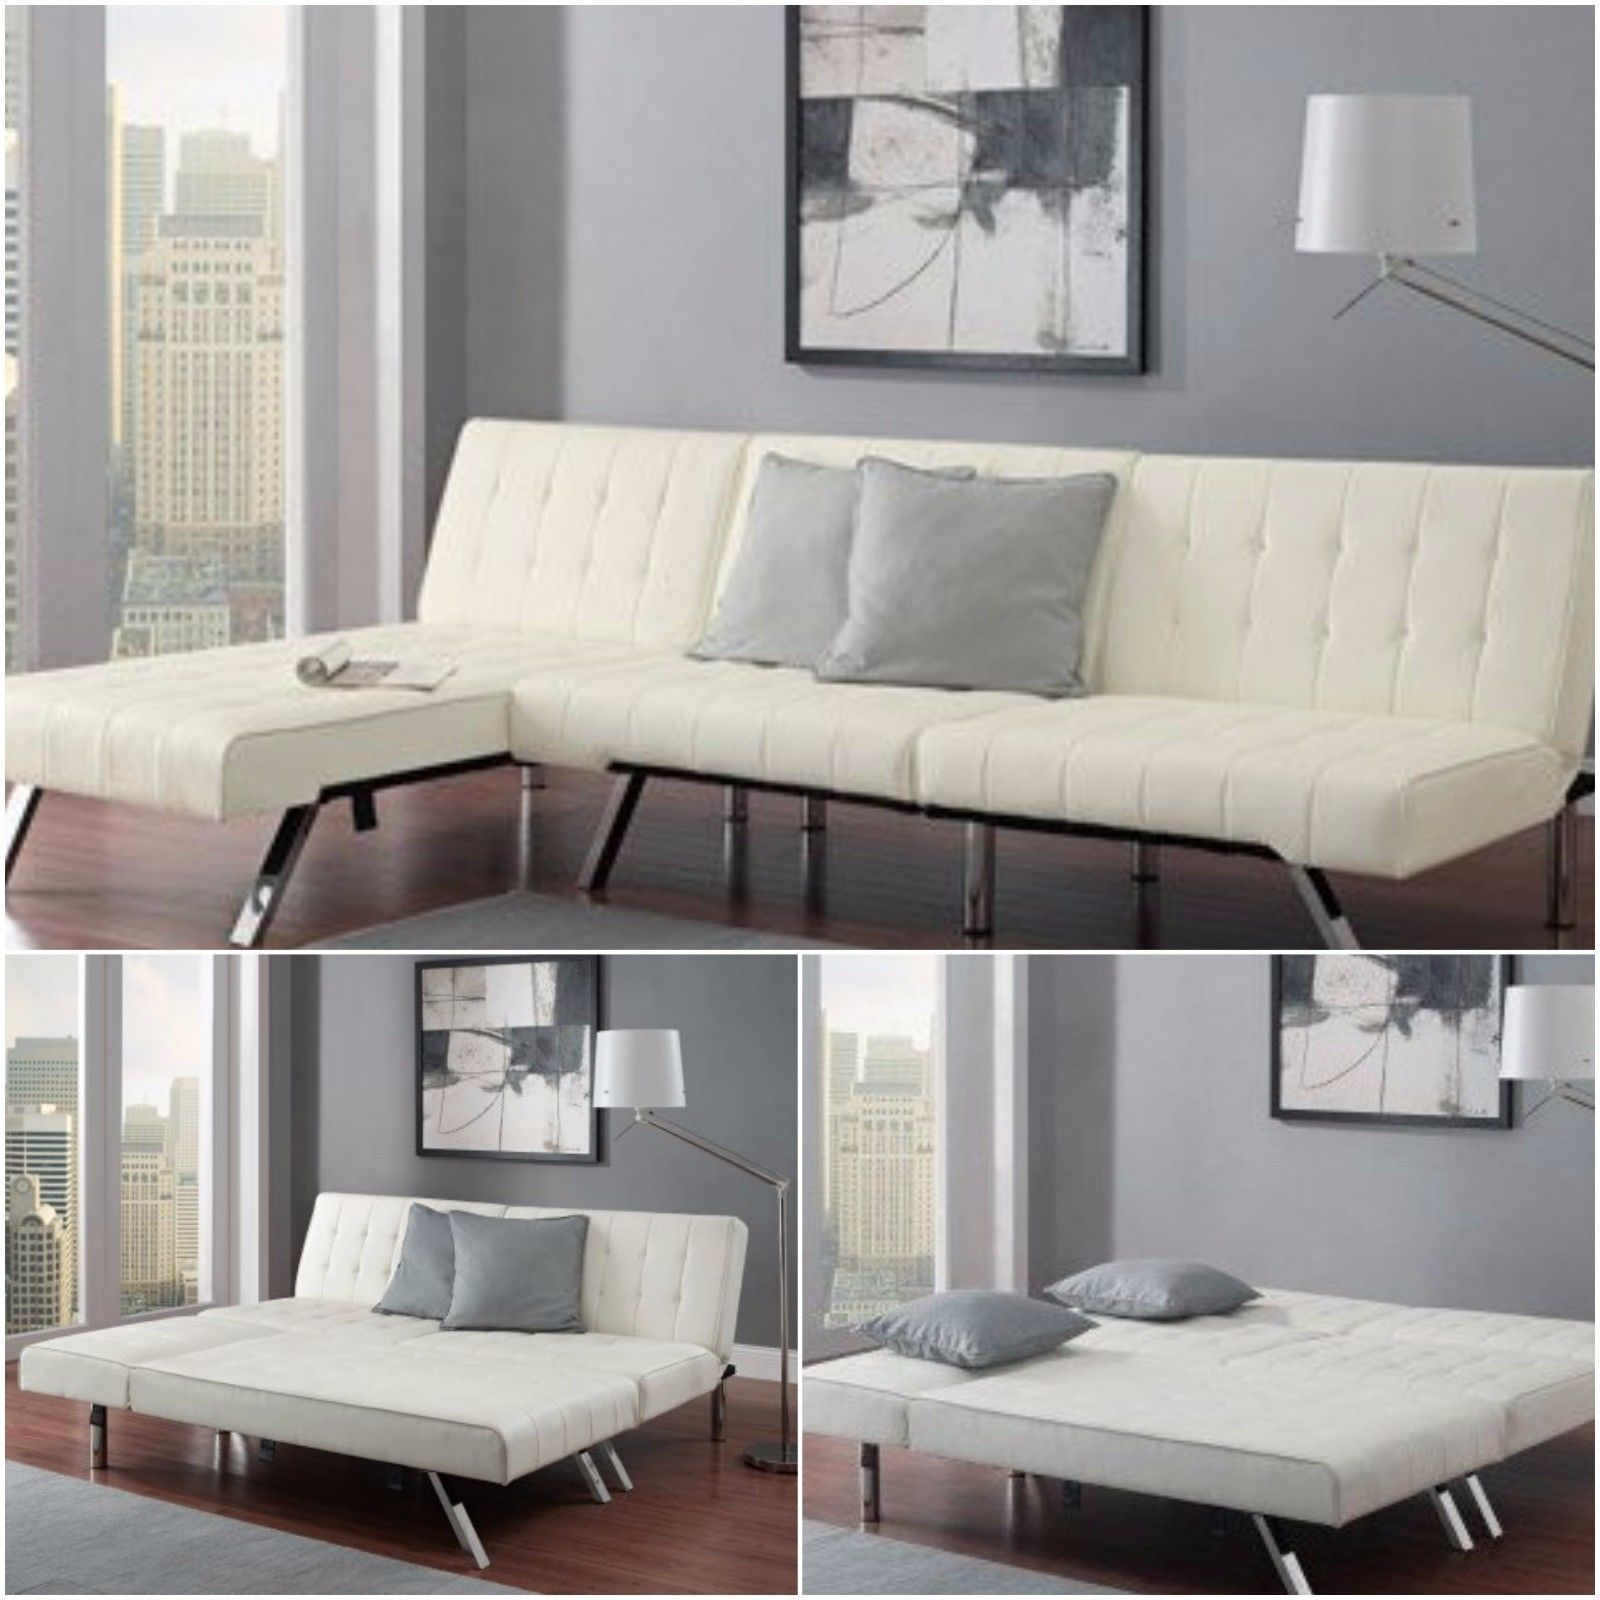 via high resolution image bed email share download convertible product flexsteel a com bluestem sleeper sofa